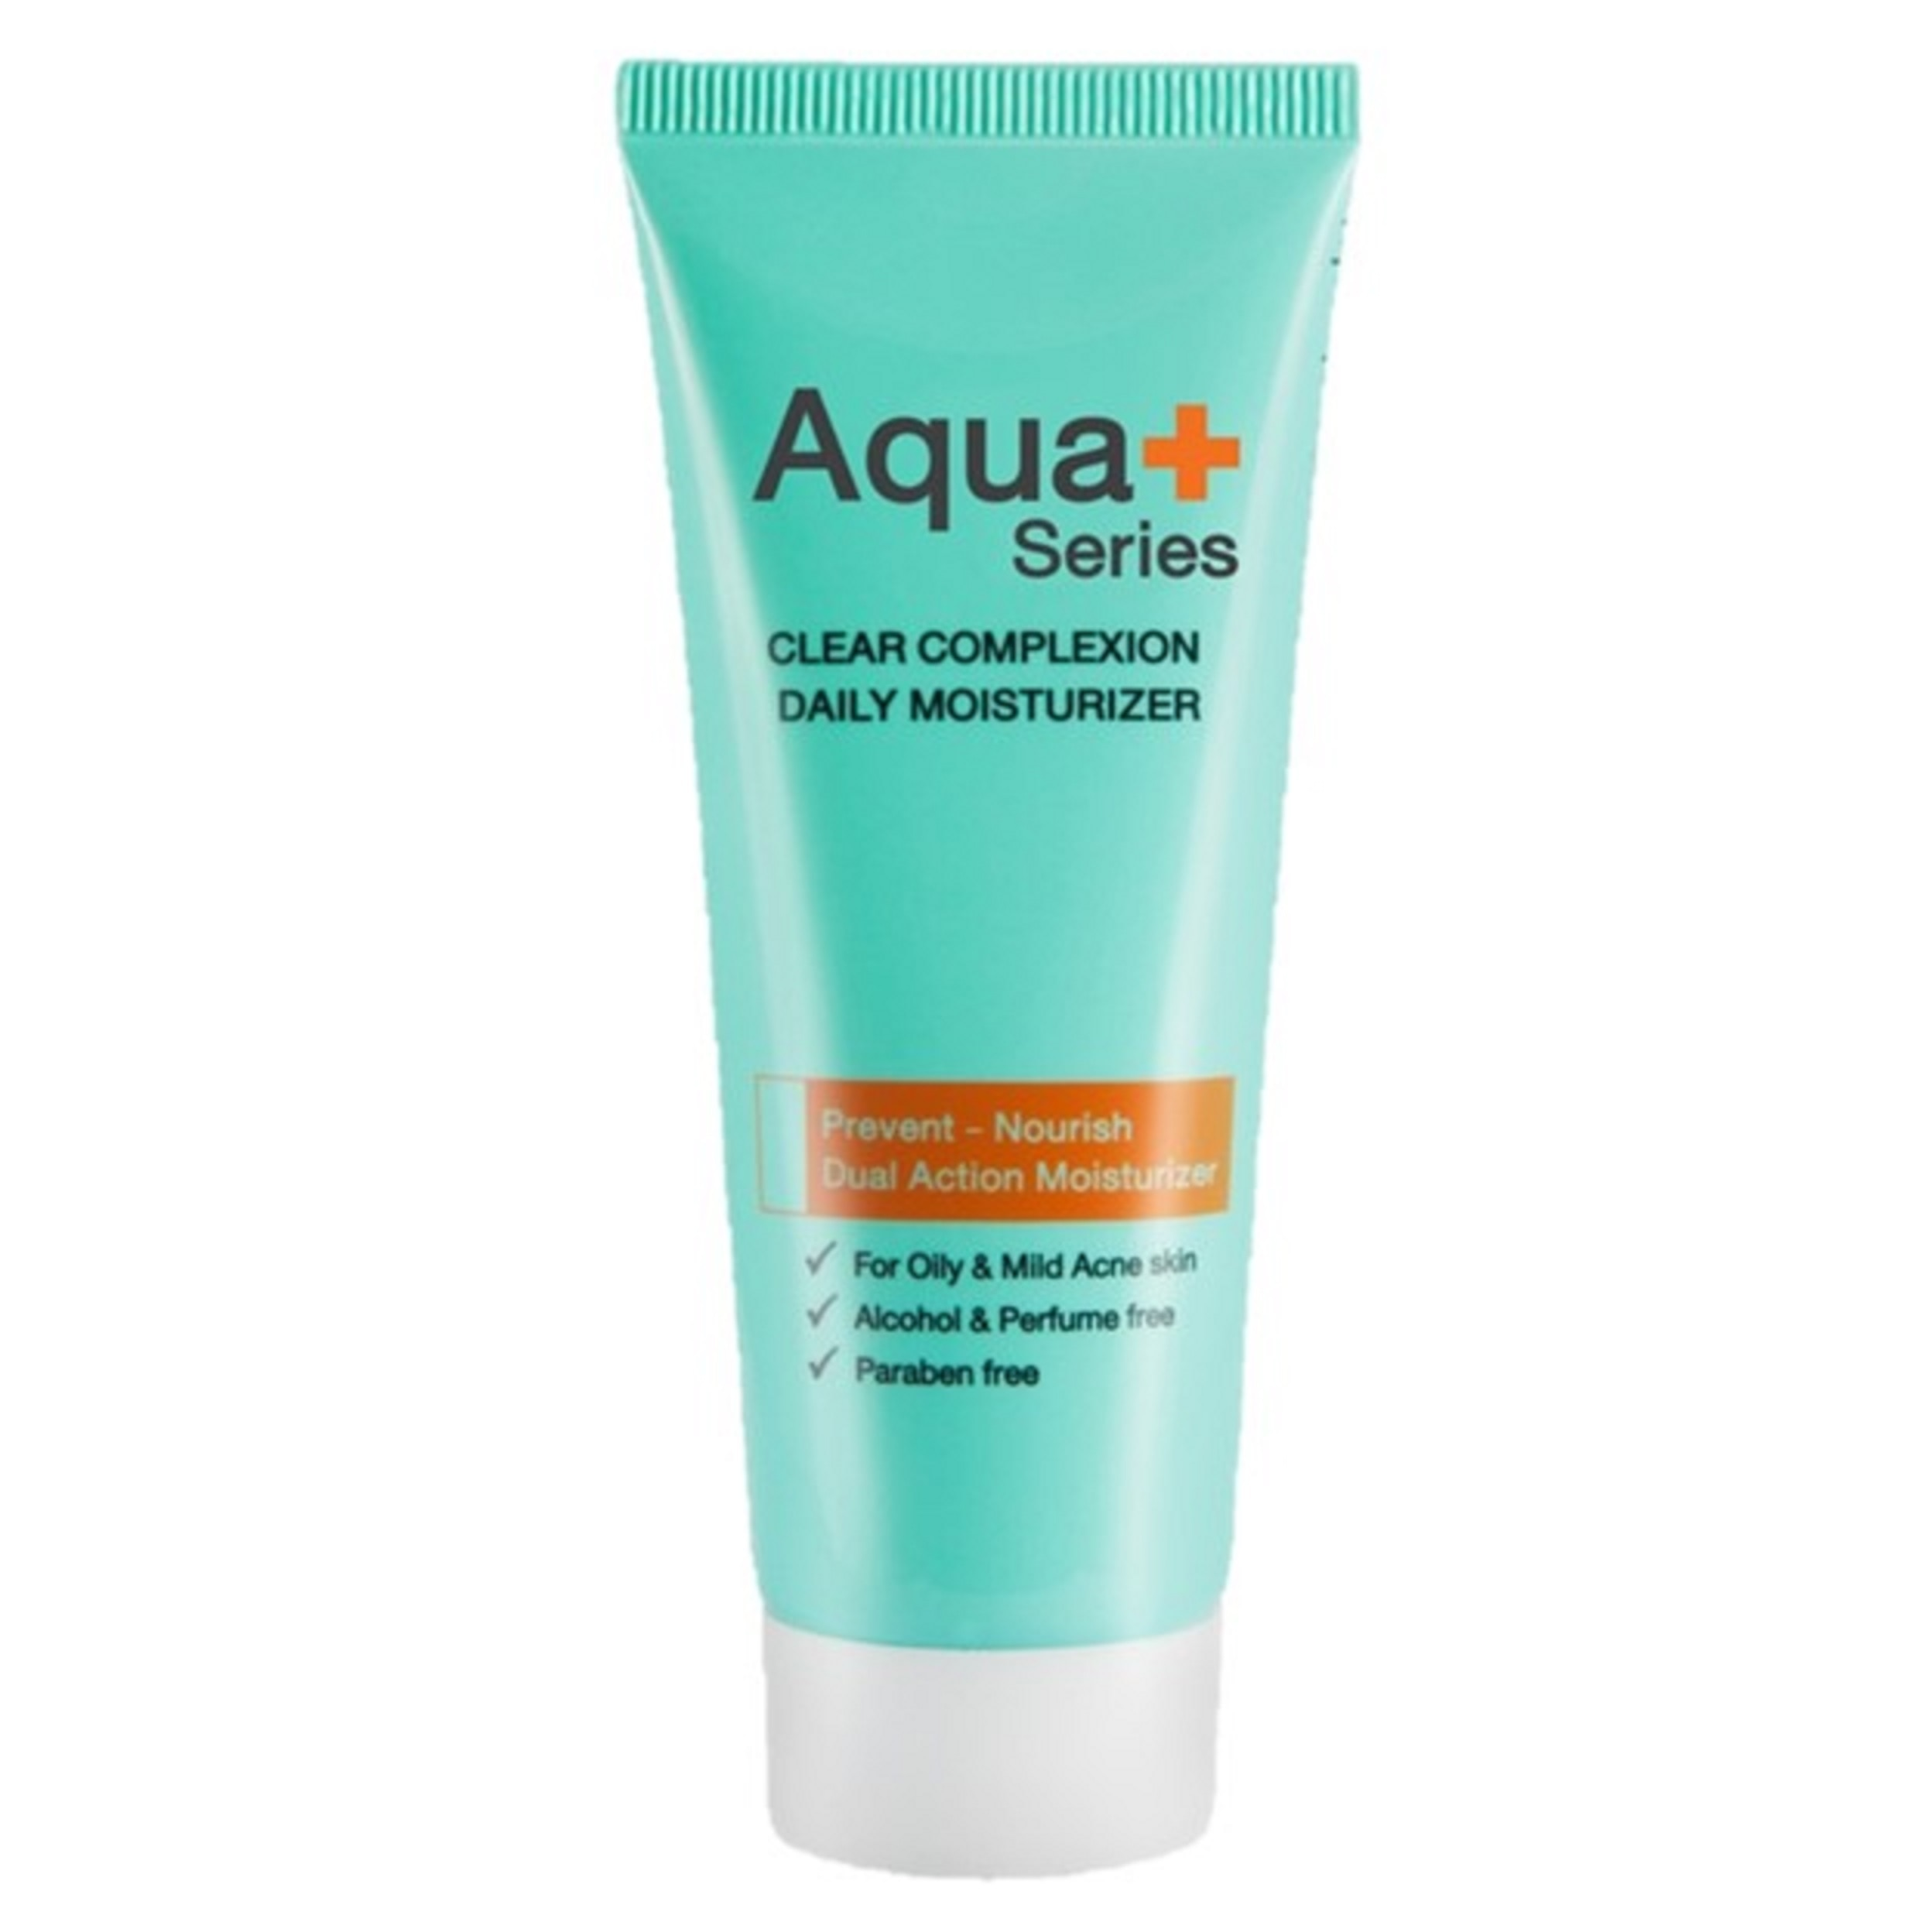 Clear Complexion Daily Moisturizer 50g